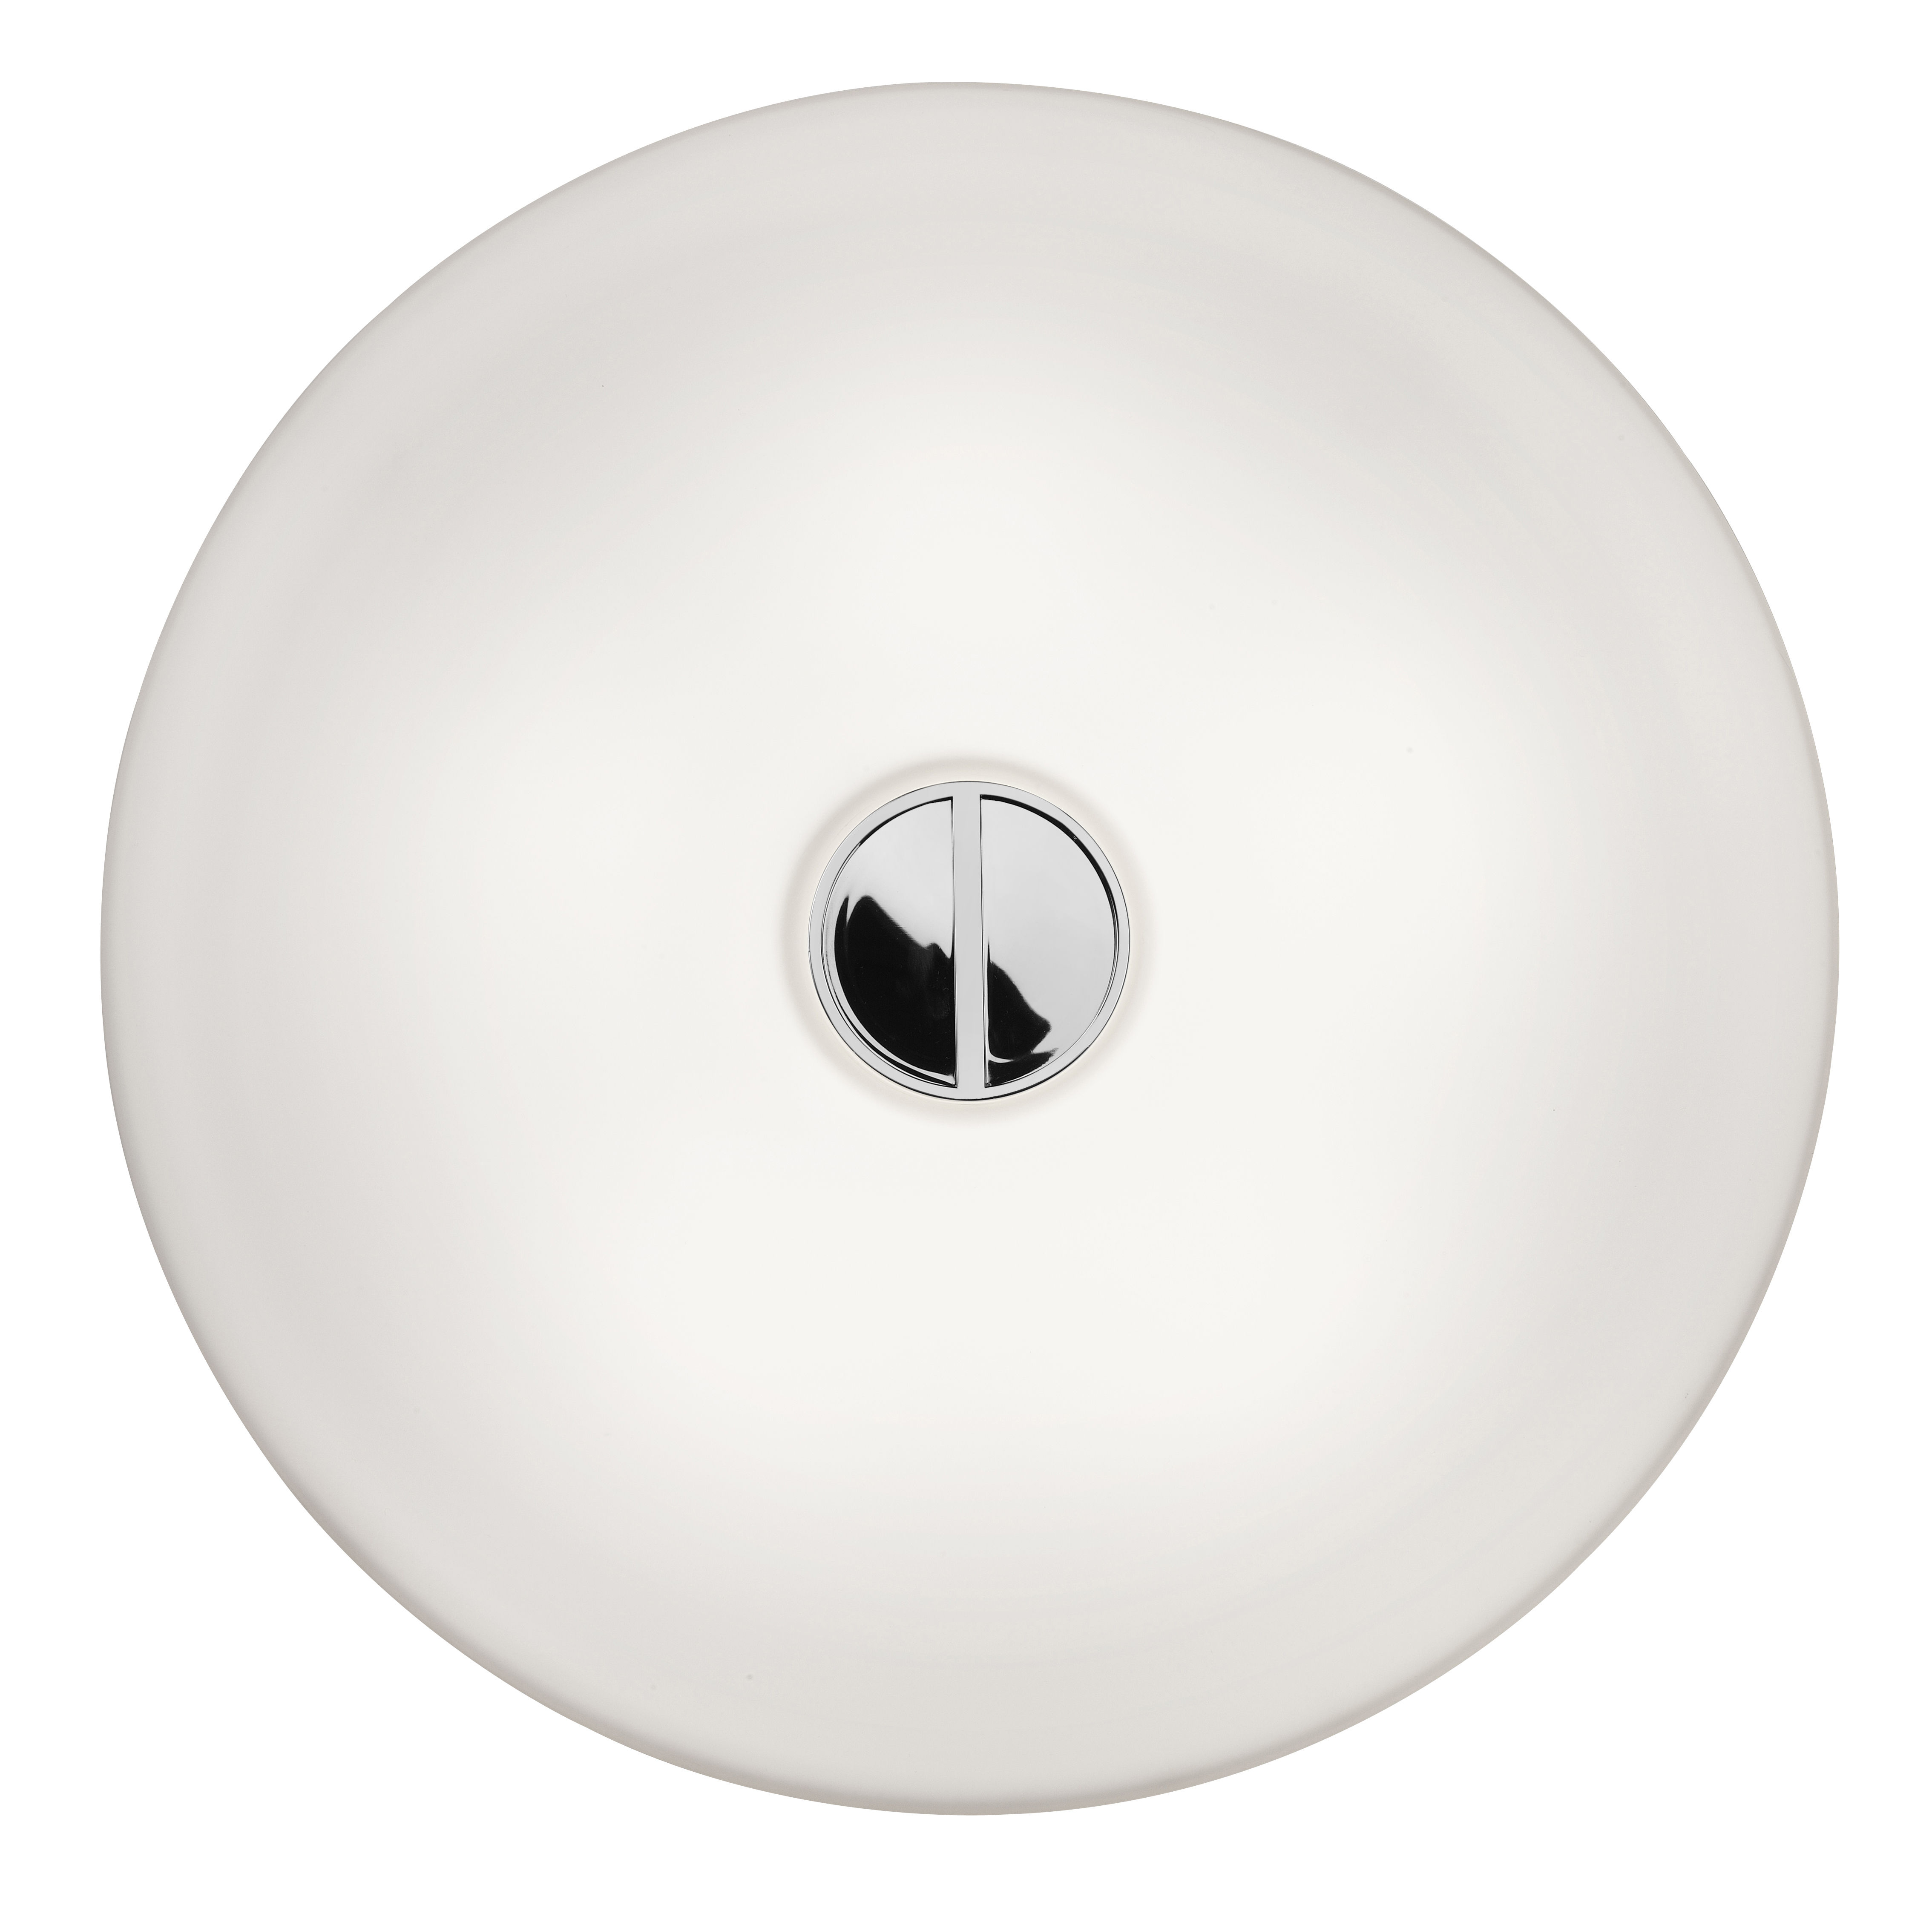 Lighting - Wall Lights - Button Wall light - Ceiling light by Flos - White/White - Polycarbonate